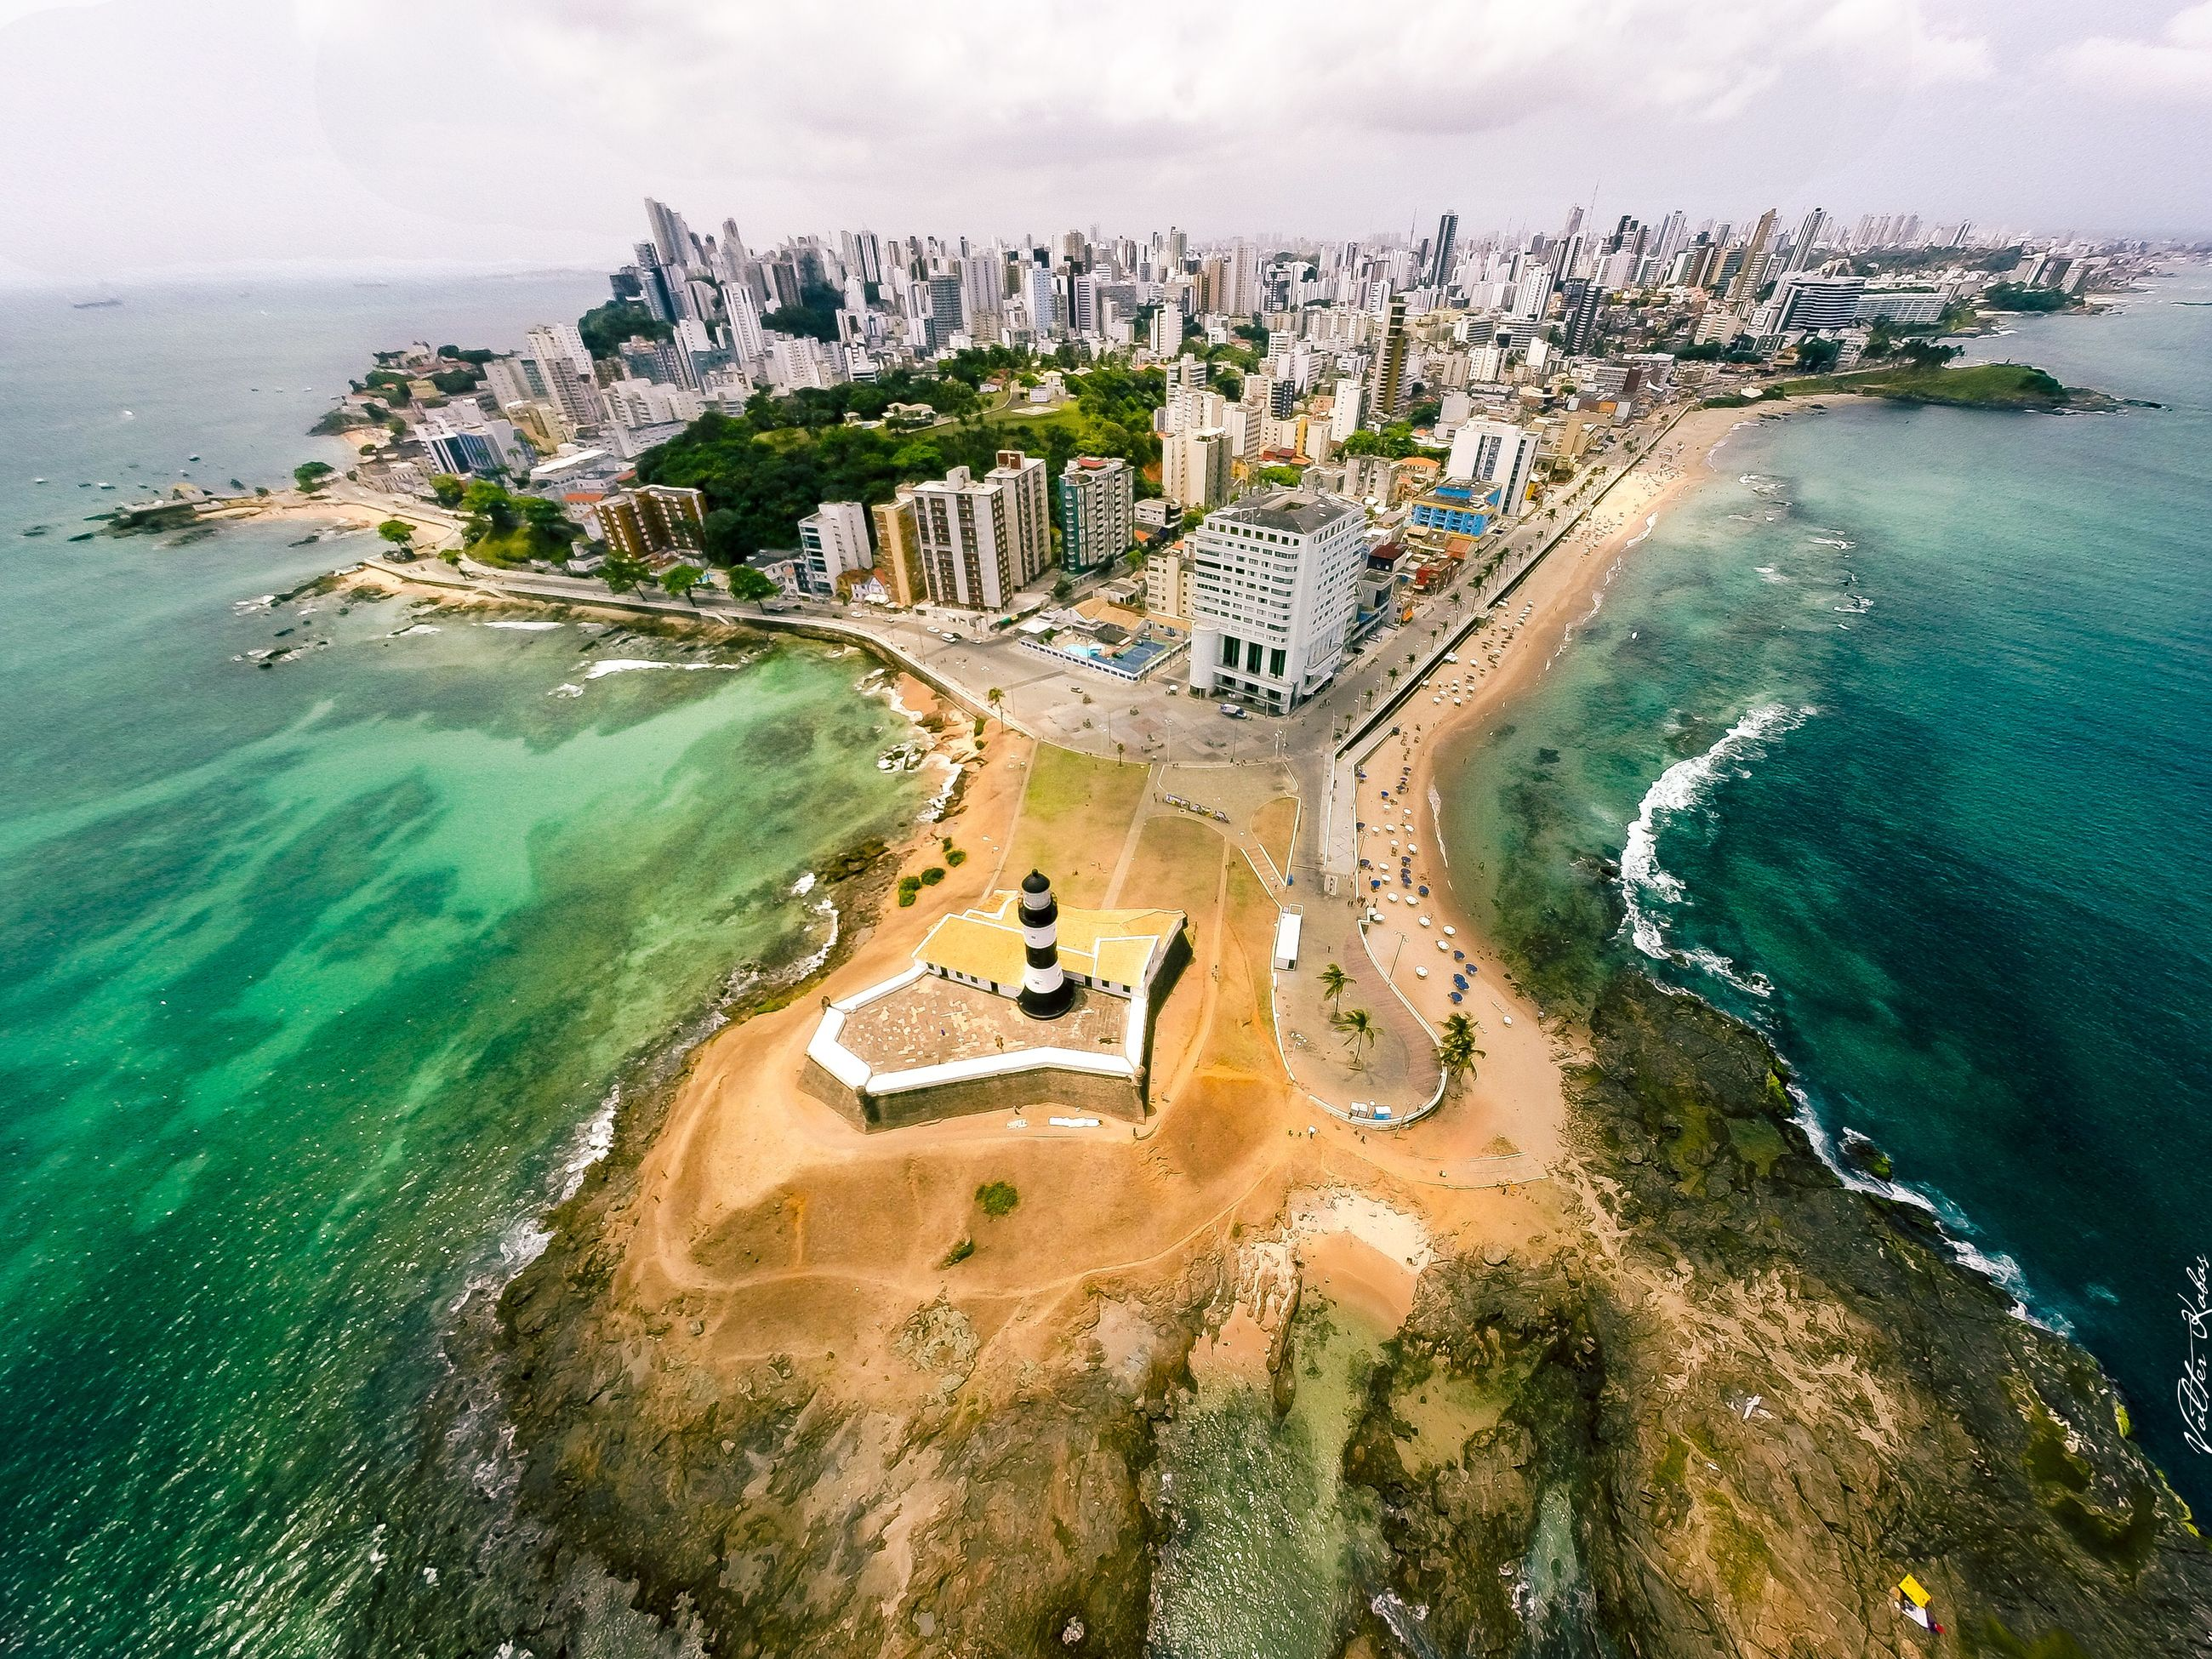 sea, water, high angle view, architecture, building exterior, built structure, cityscape, coastline, aerial view, horizon over water, beach, city, scenics, sky, travel destinations, nature, travel, beauty in nature, tourism, crowded